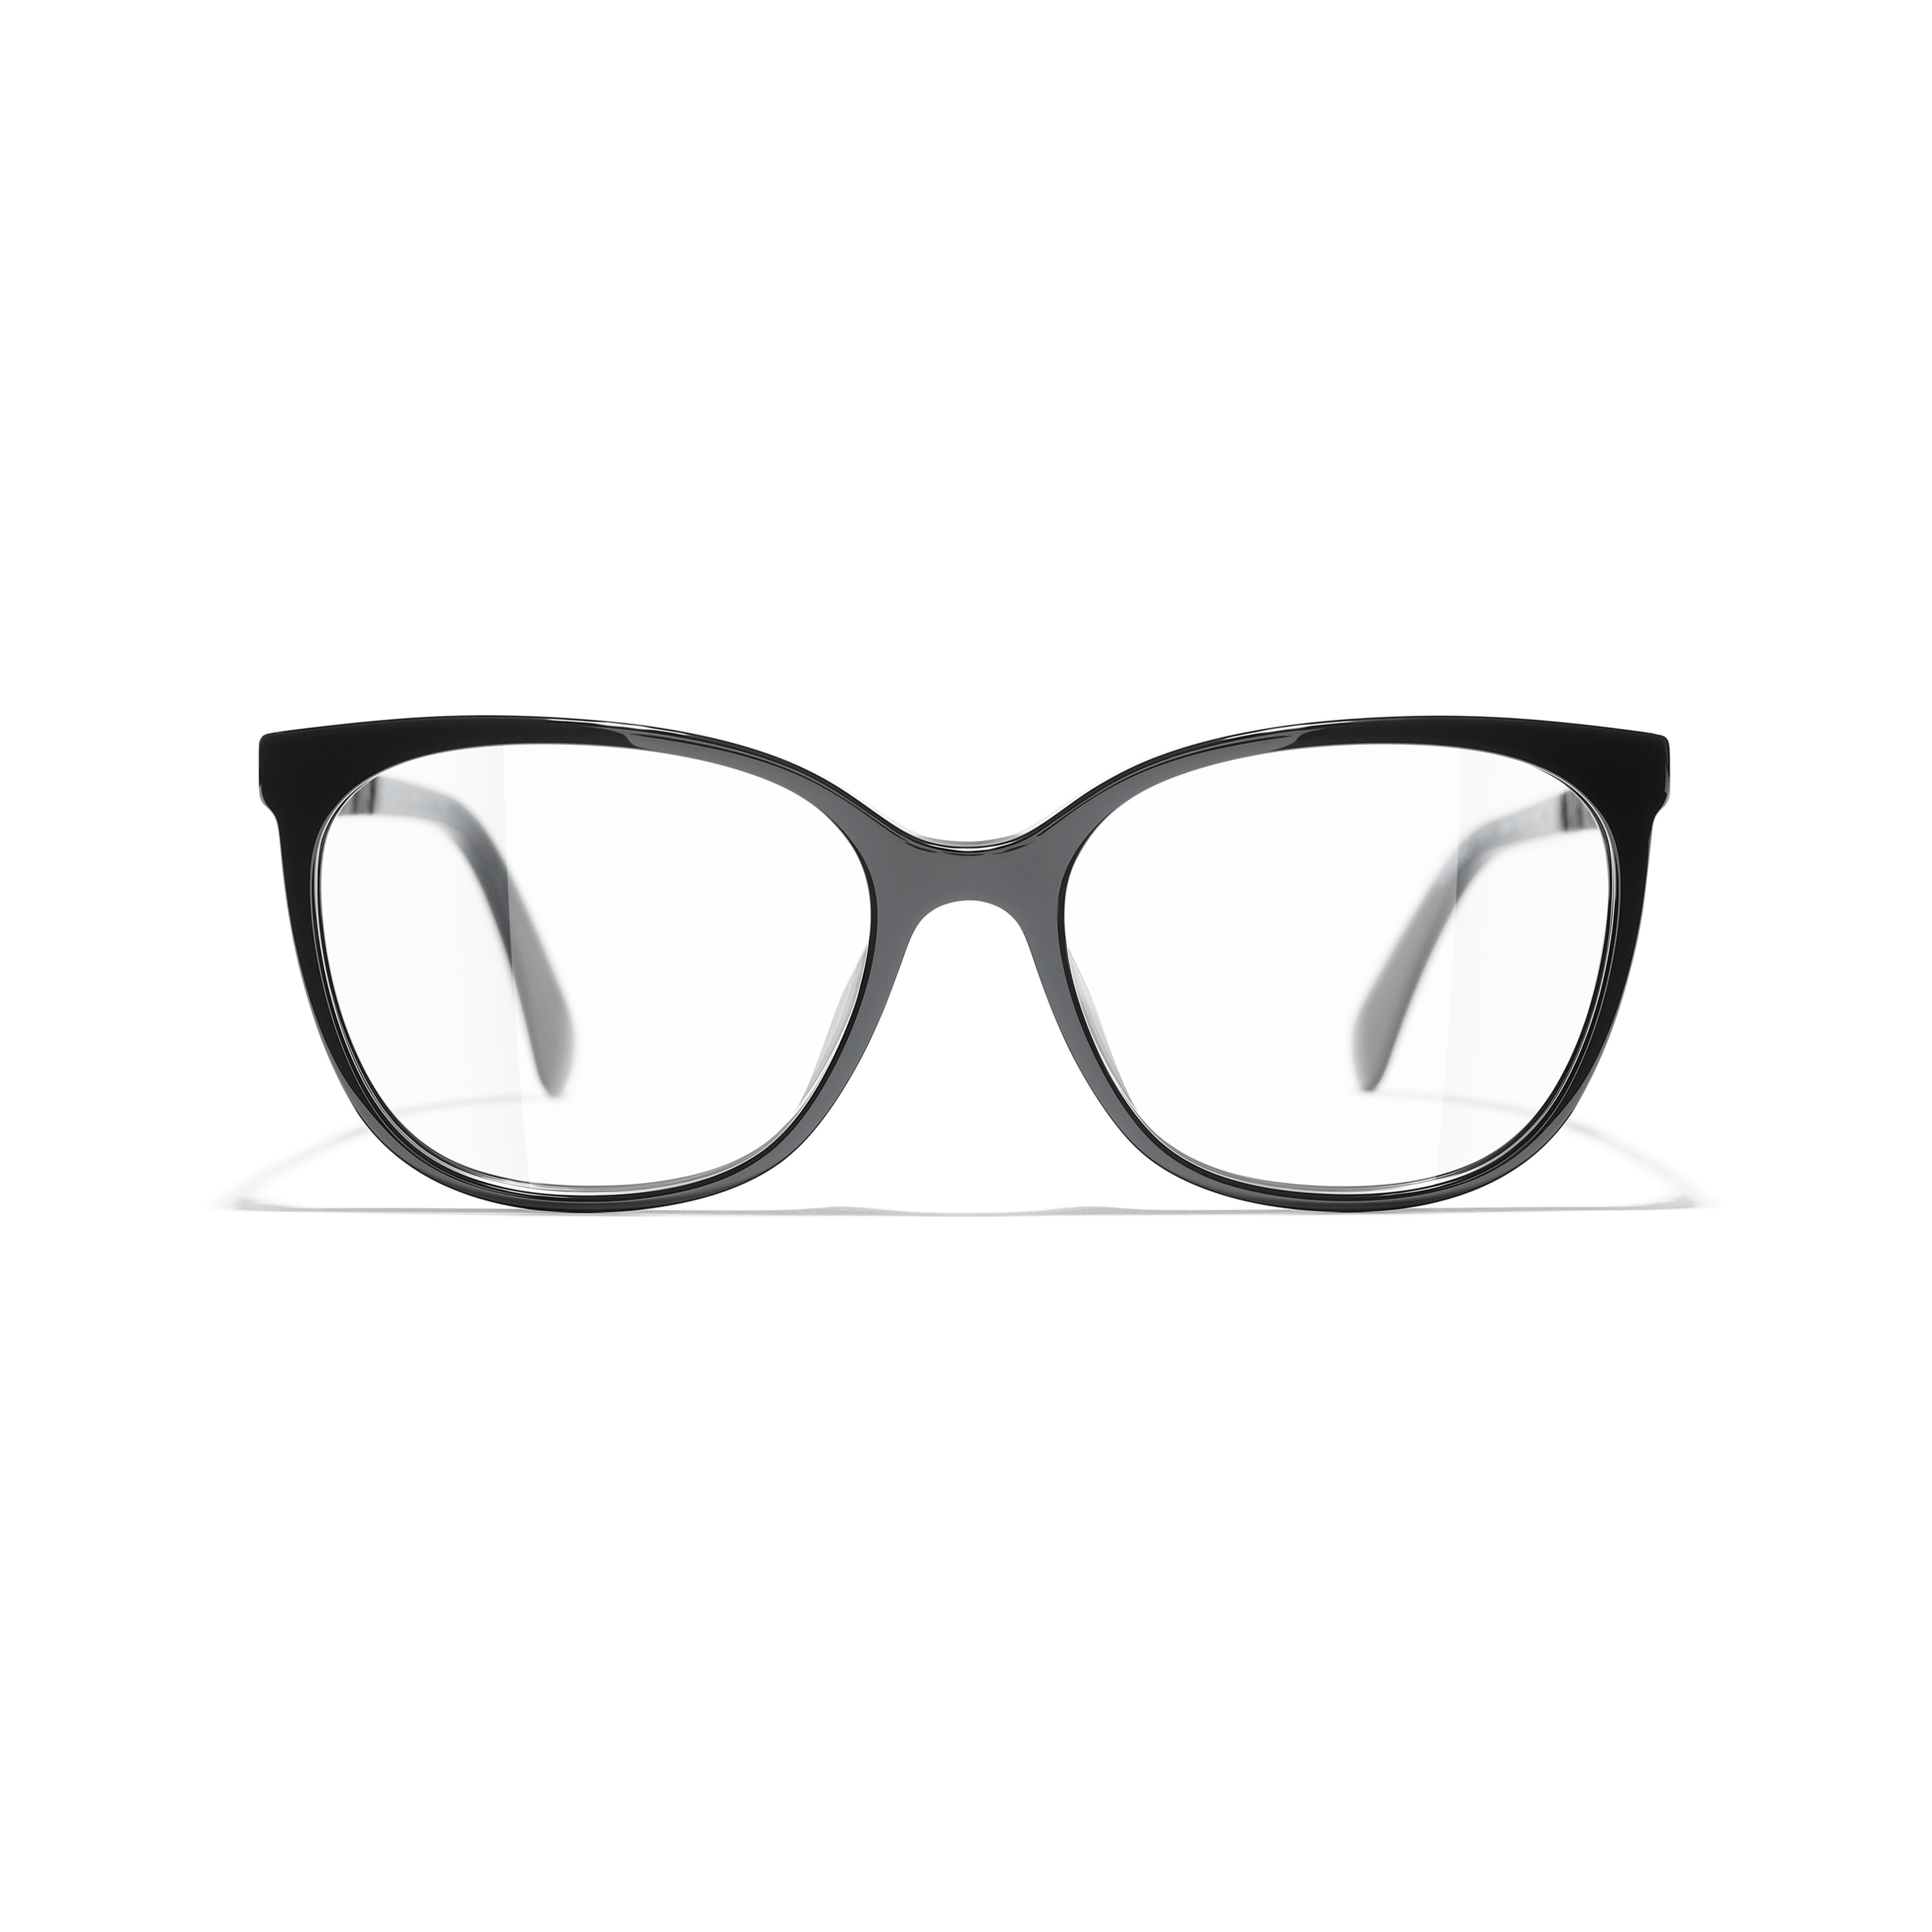 Square Eyeglasses - Black - Acetate & Metal - CHANEL - Alternative view - see standard sized version